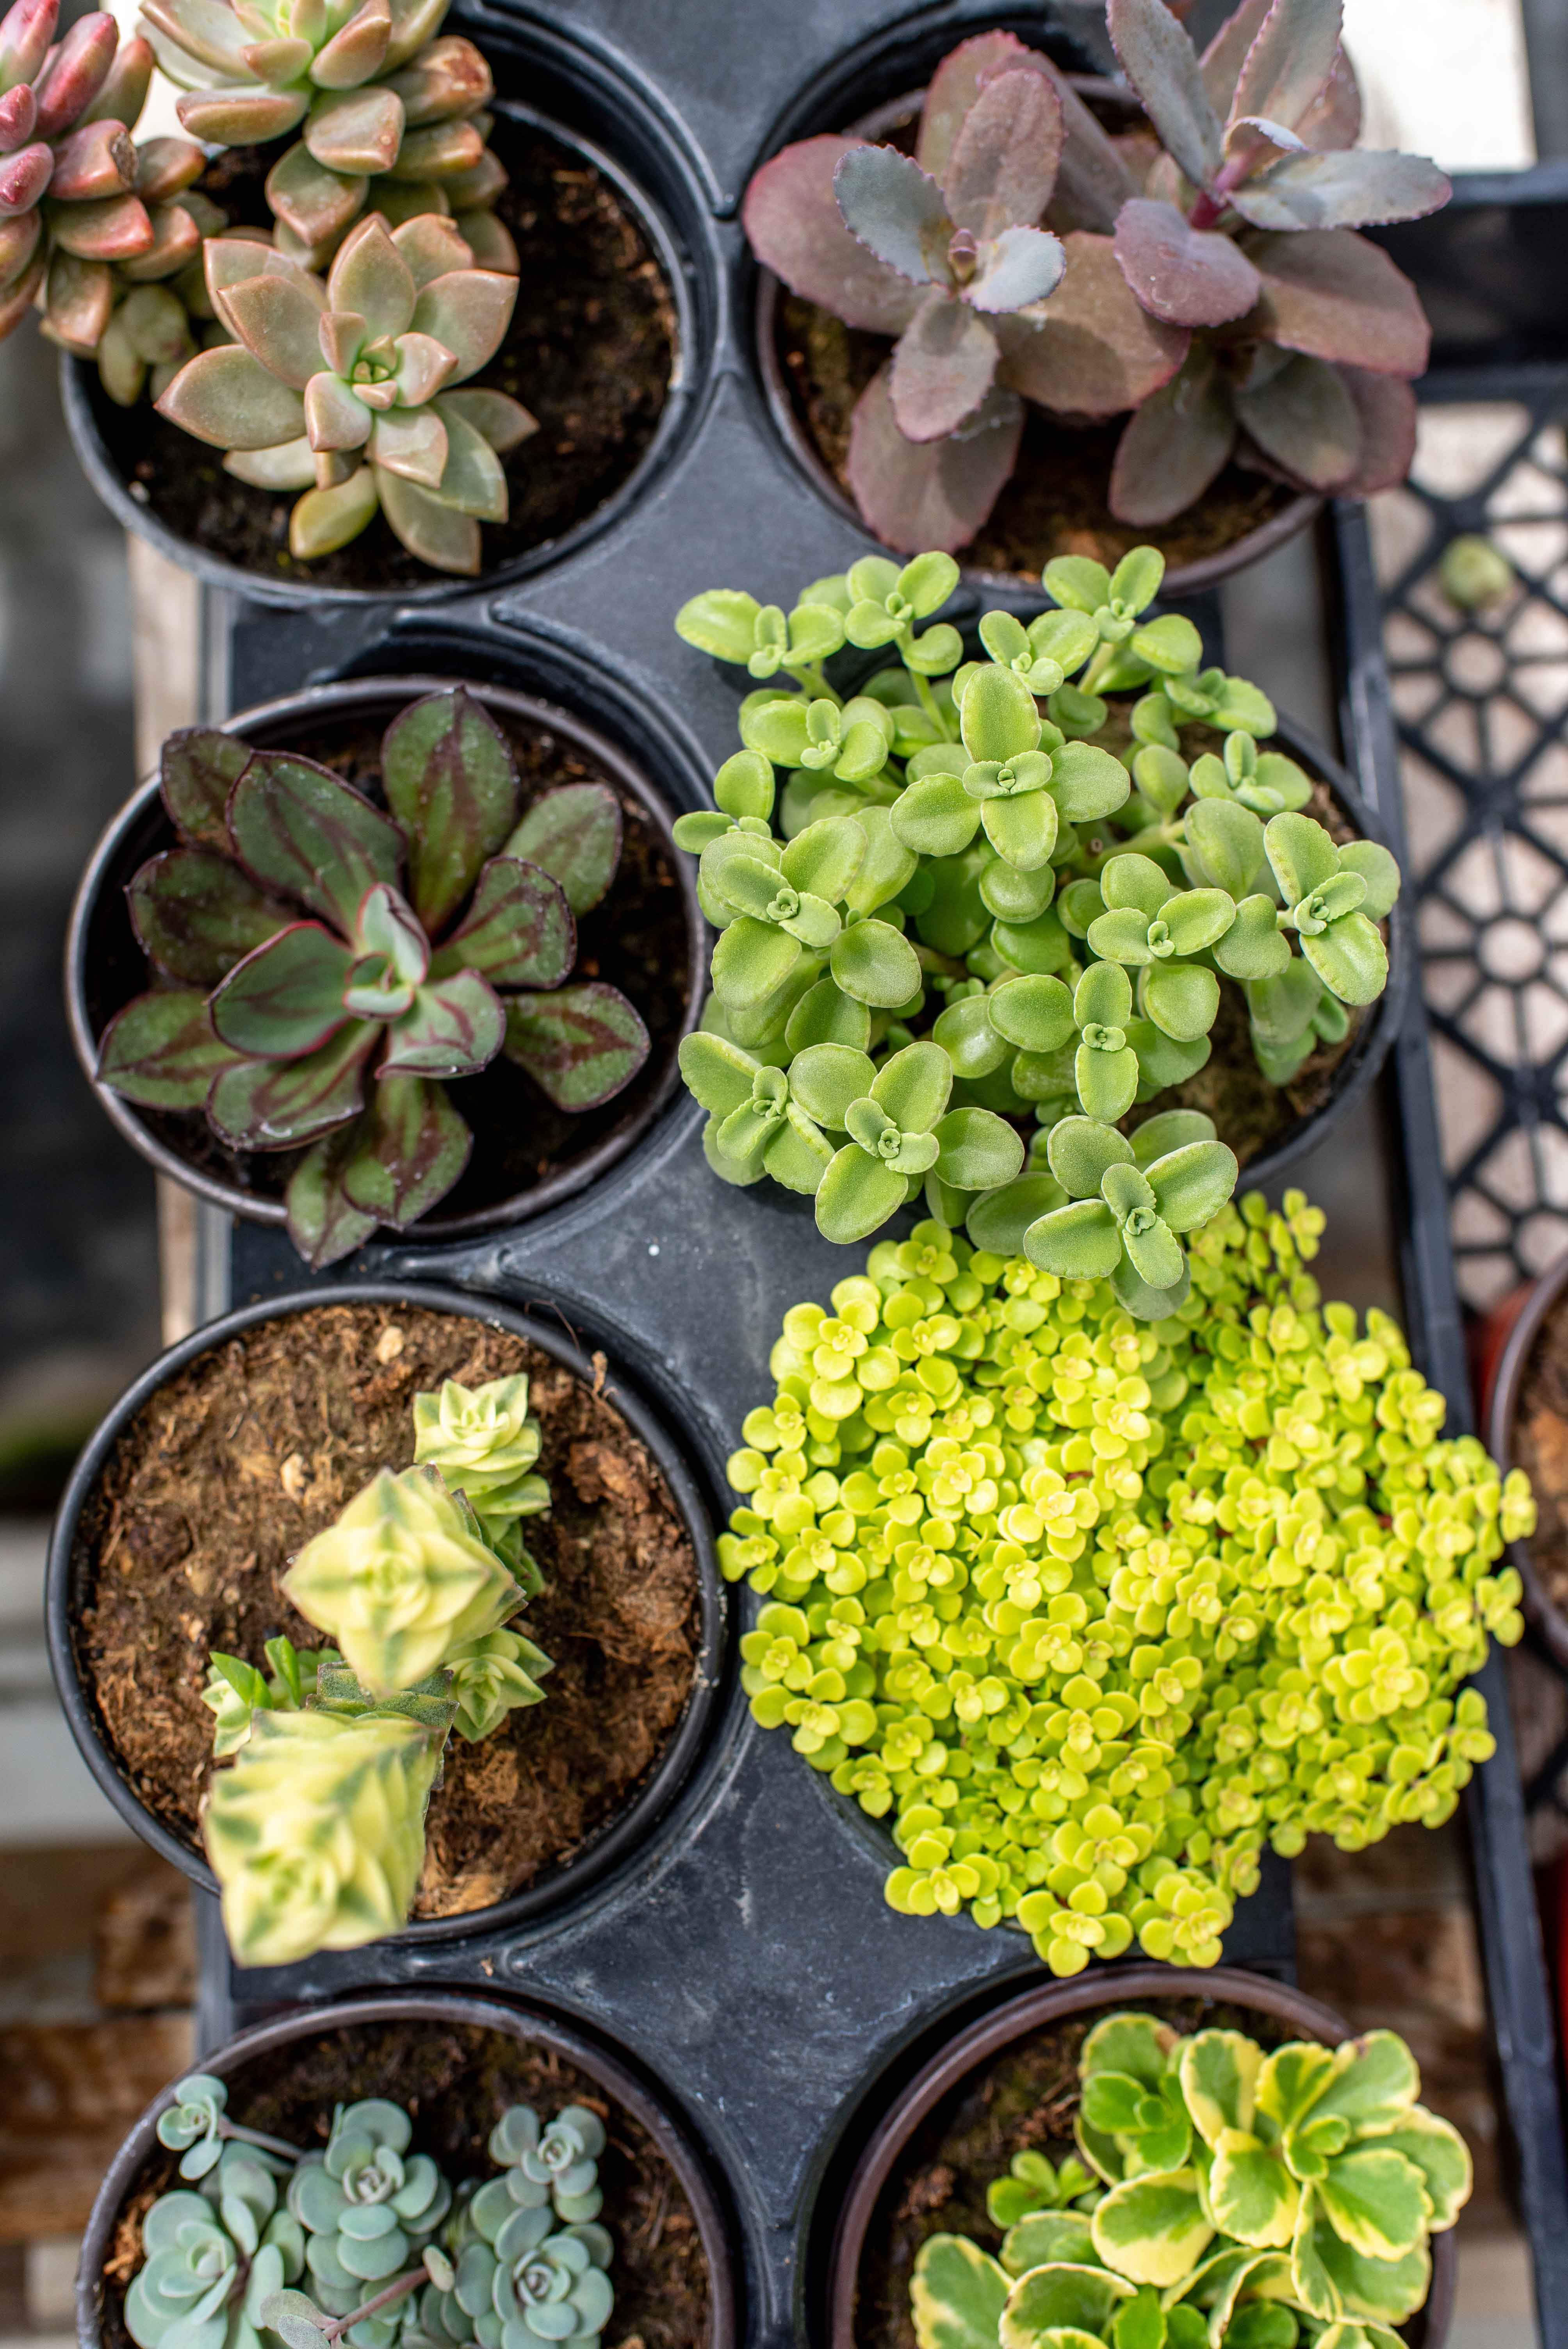 Photo of succulents for sale at Cal Poly's annual Succulentopia sale.